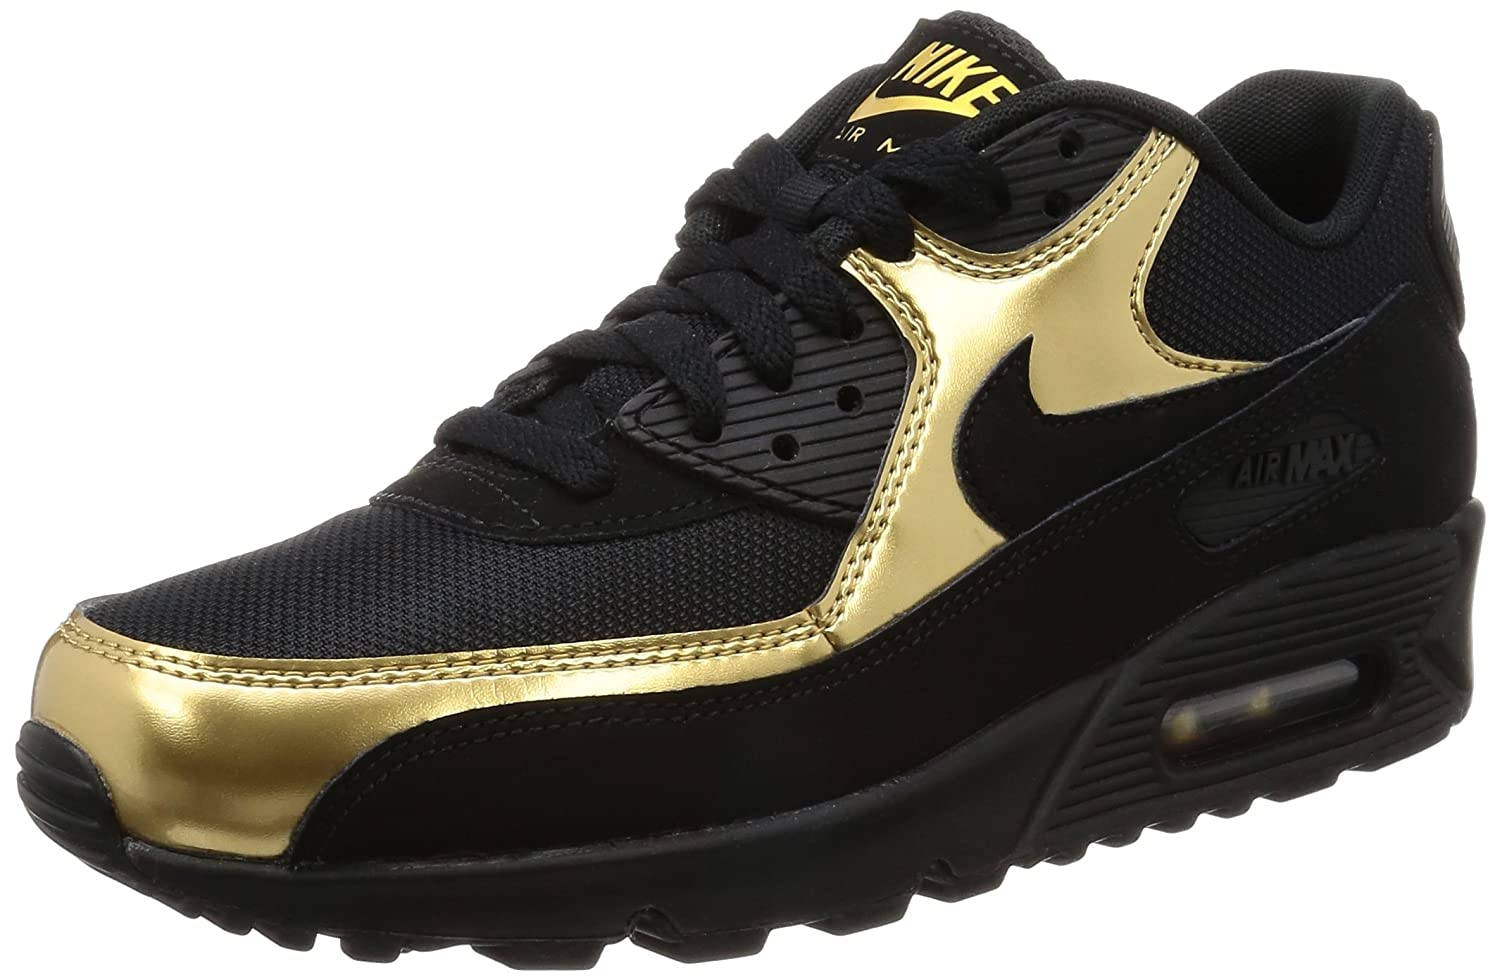 new style 7f848 7ee91 Nike Mens Air Max 90 Essential, Black Metallic Gold, 537384-058 chic.